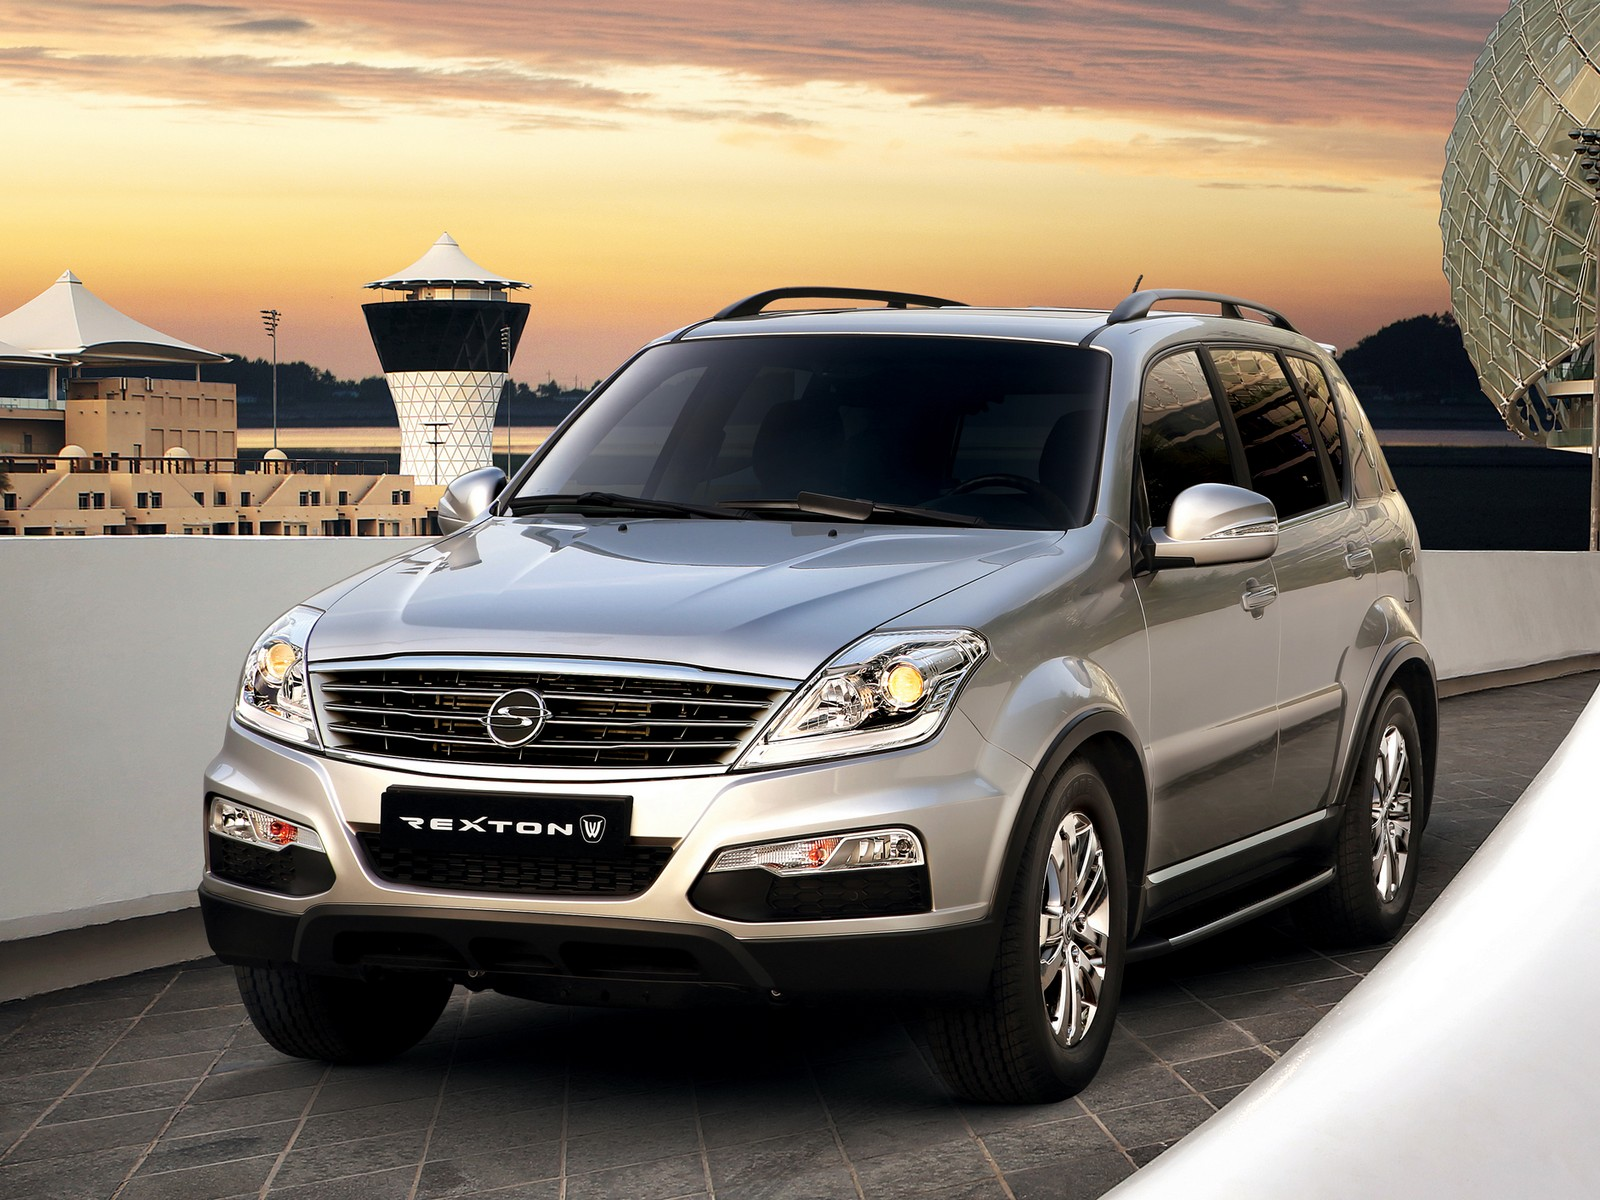 ssangyong-rexton-w-5-door-mid-size-offro